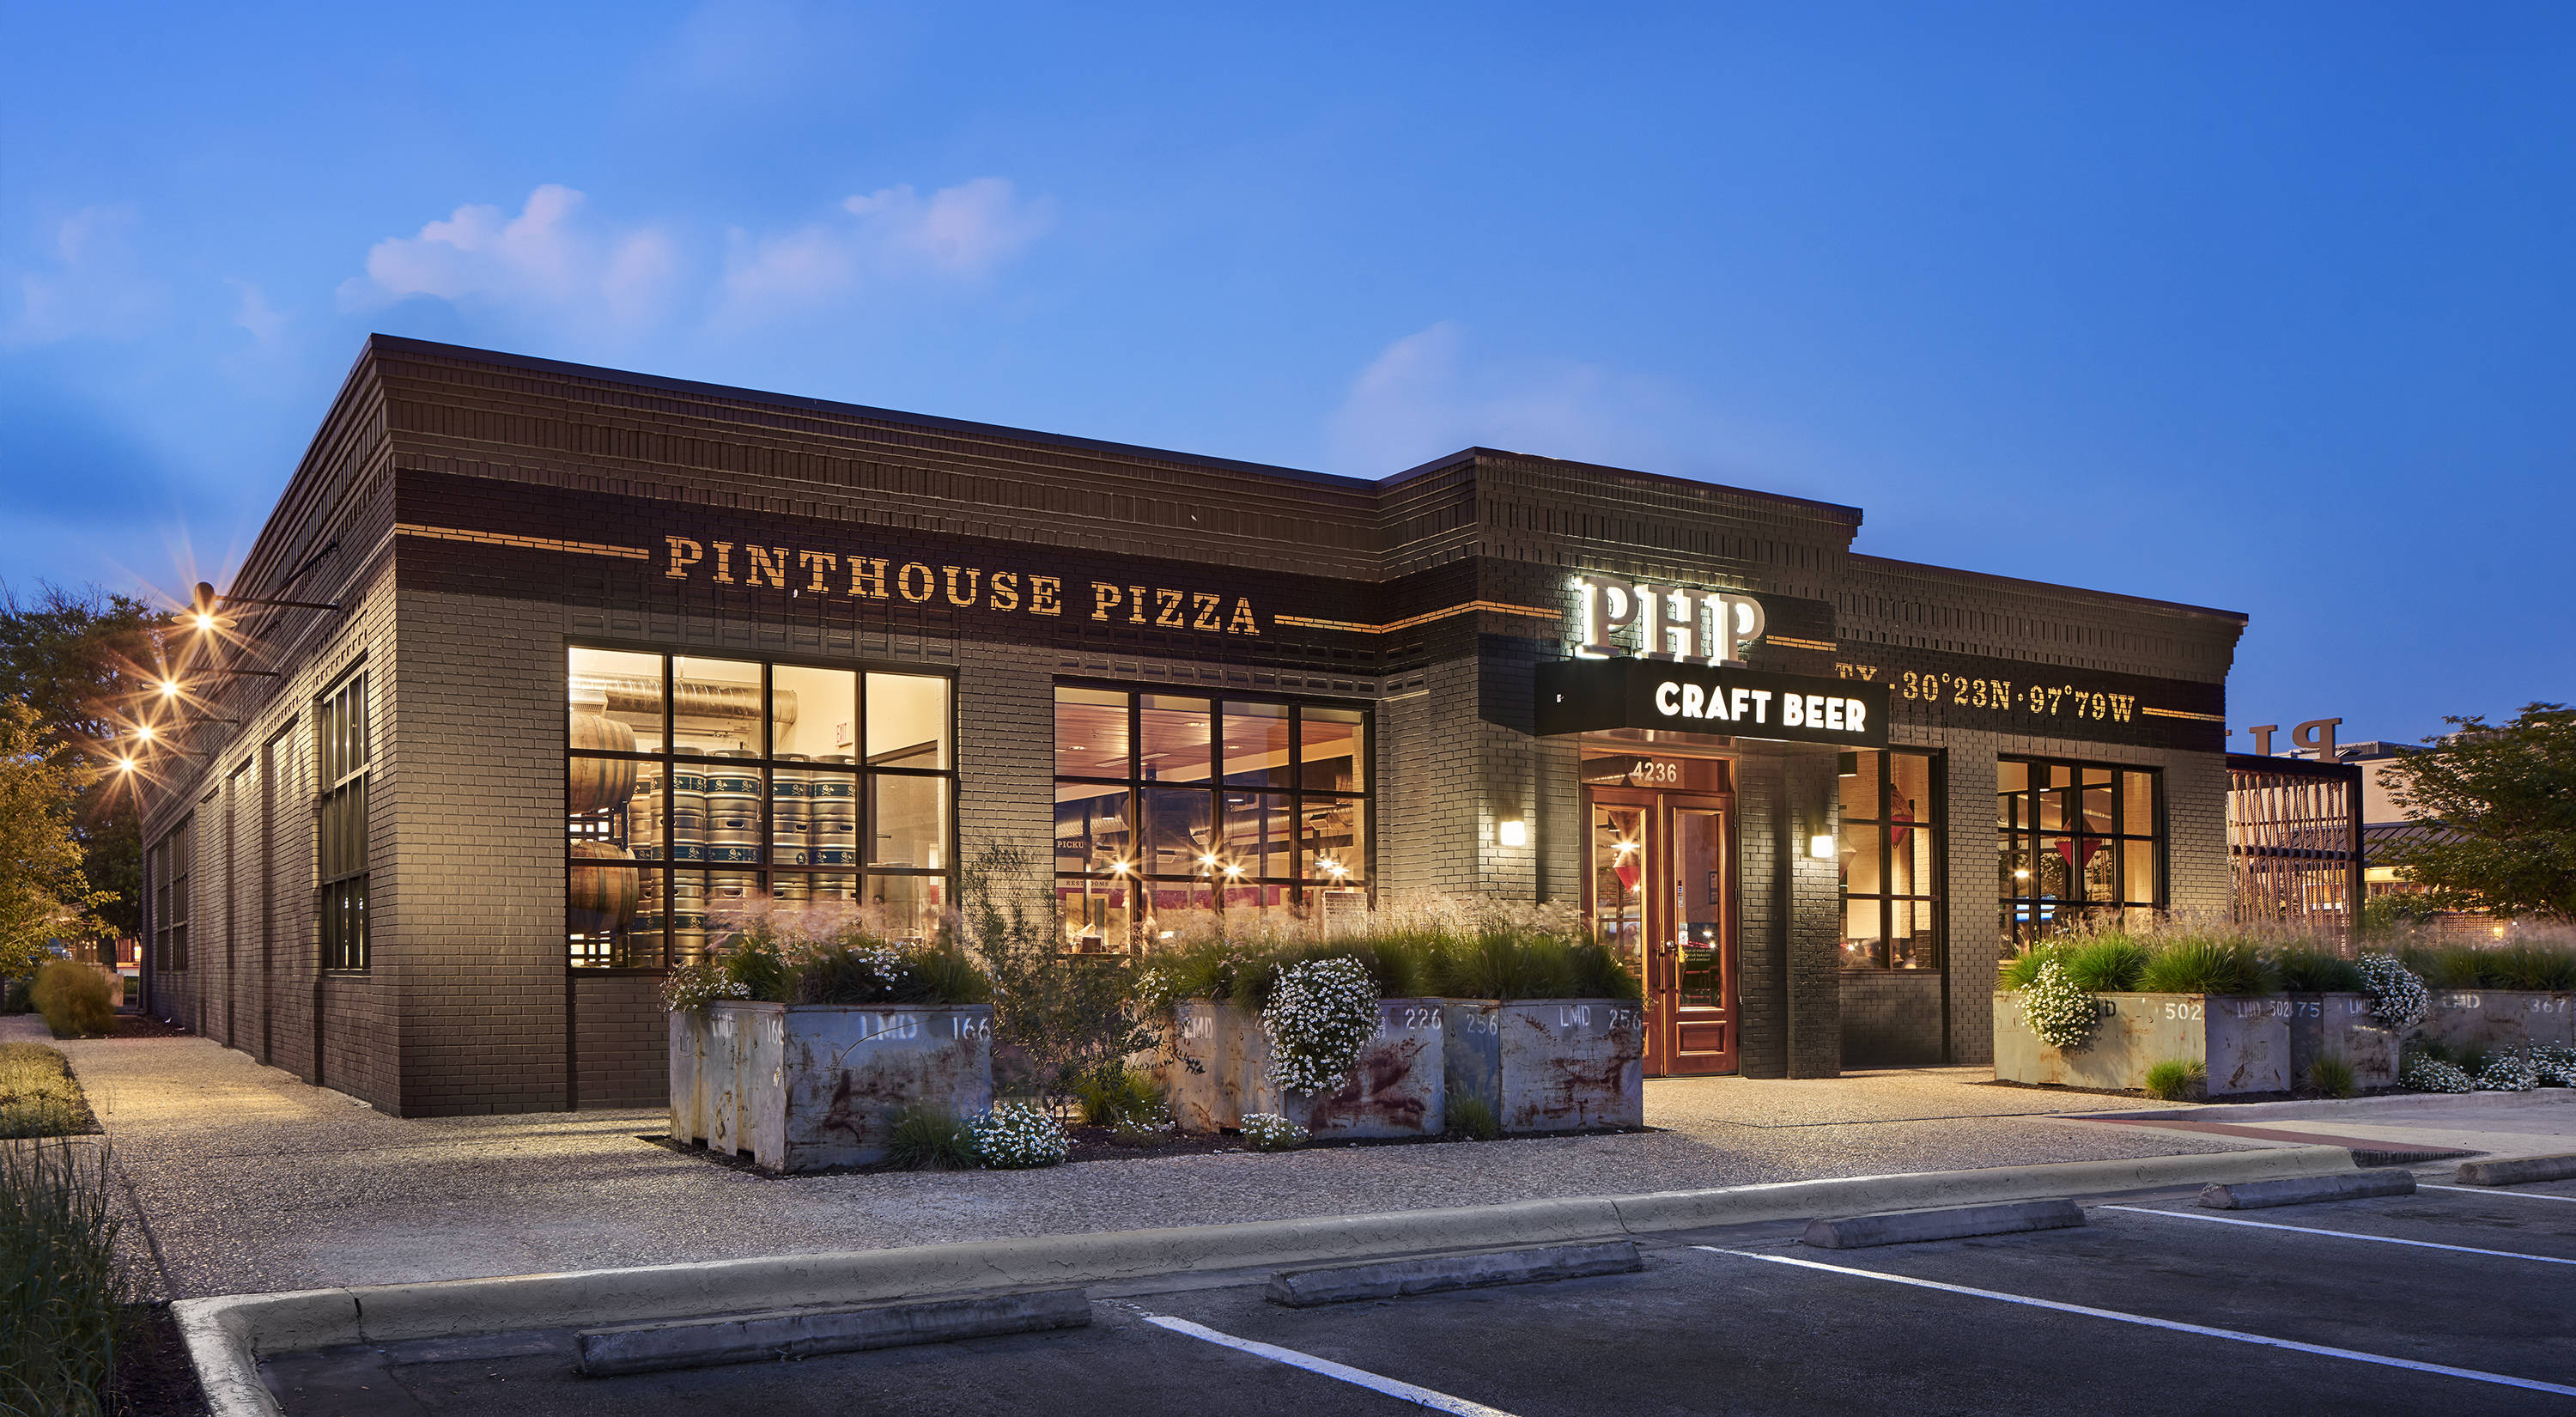 Pinthouse Pizza restaurant and beer branding by Helms Workshop in Austin, Texas